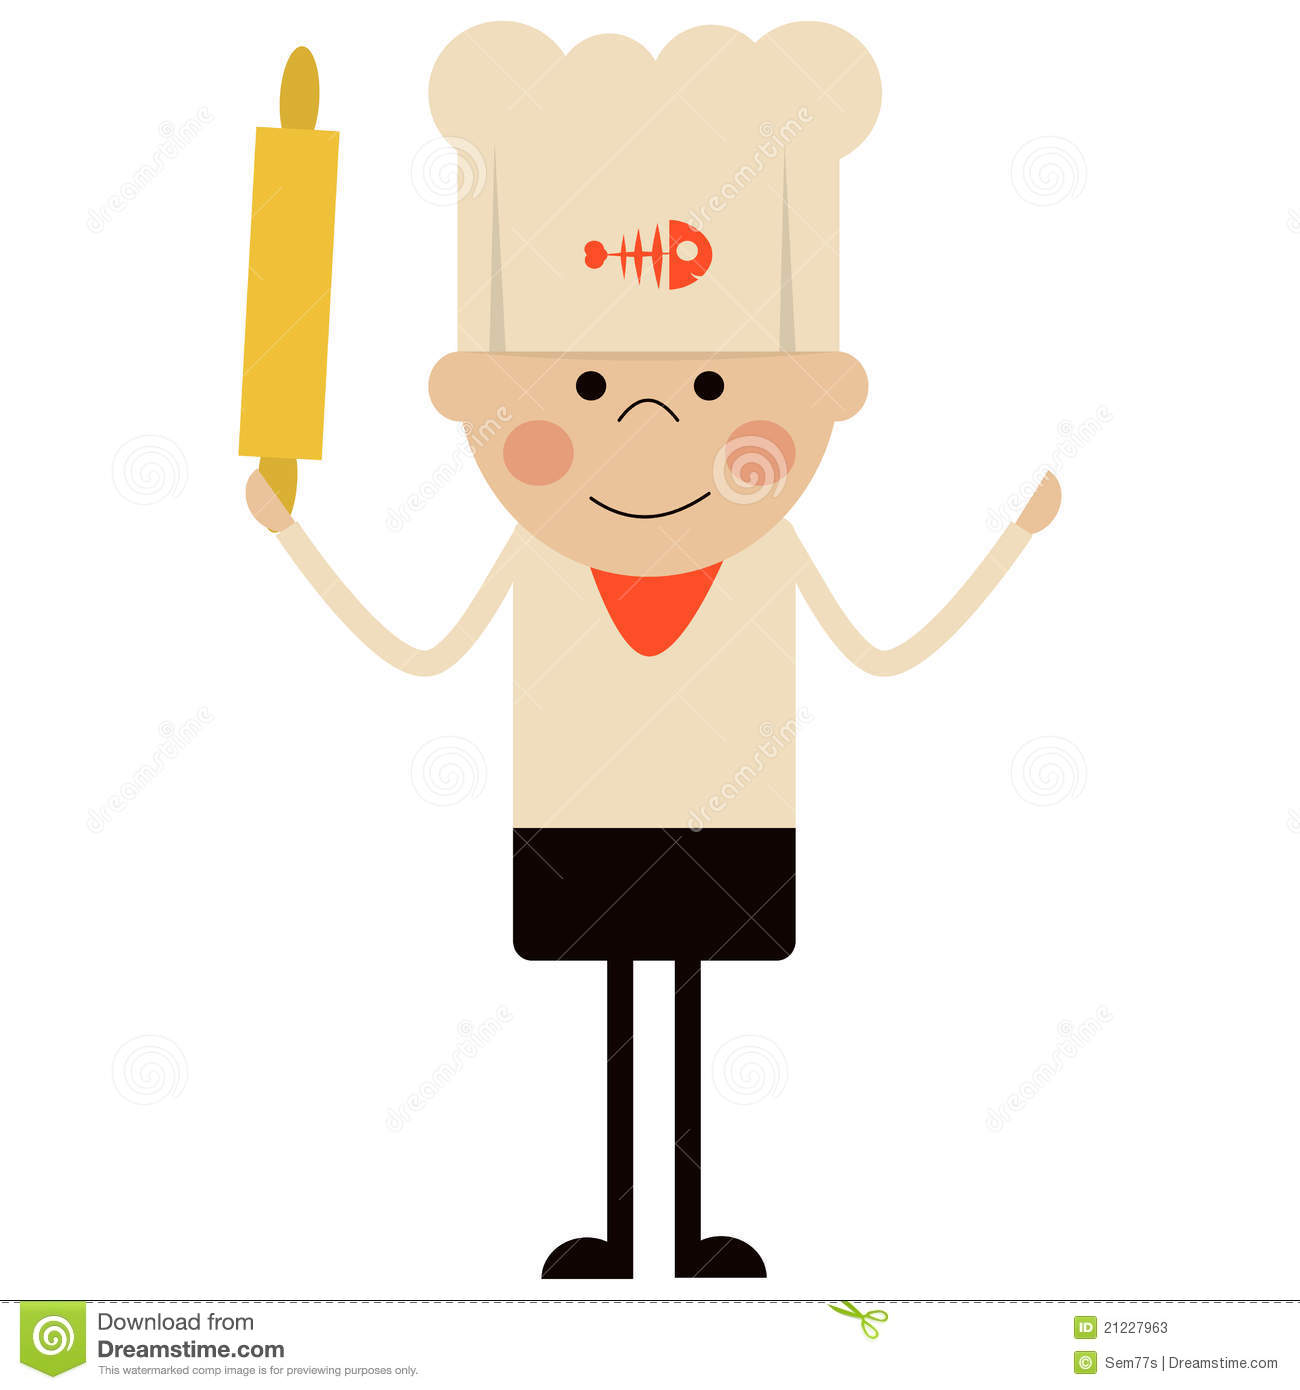 Cartoon Cook Illustration Stock Photos - Image: 21227963